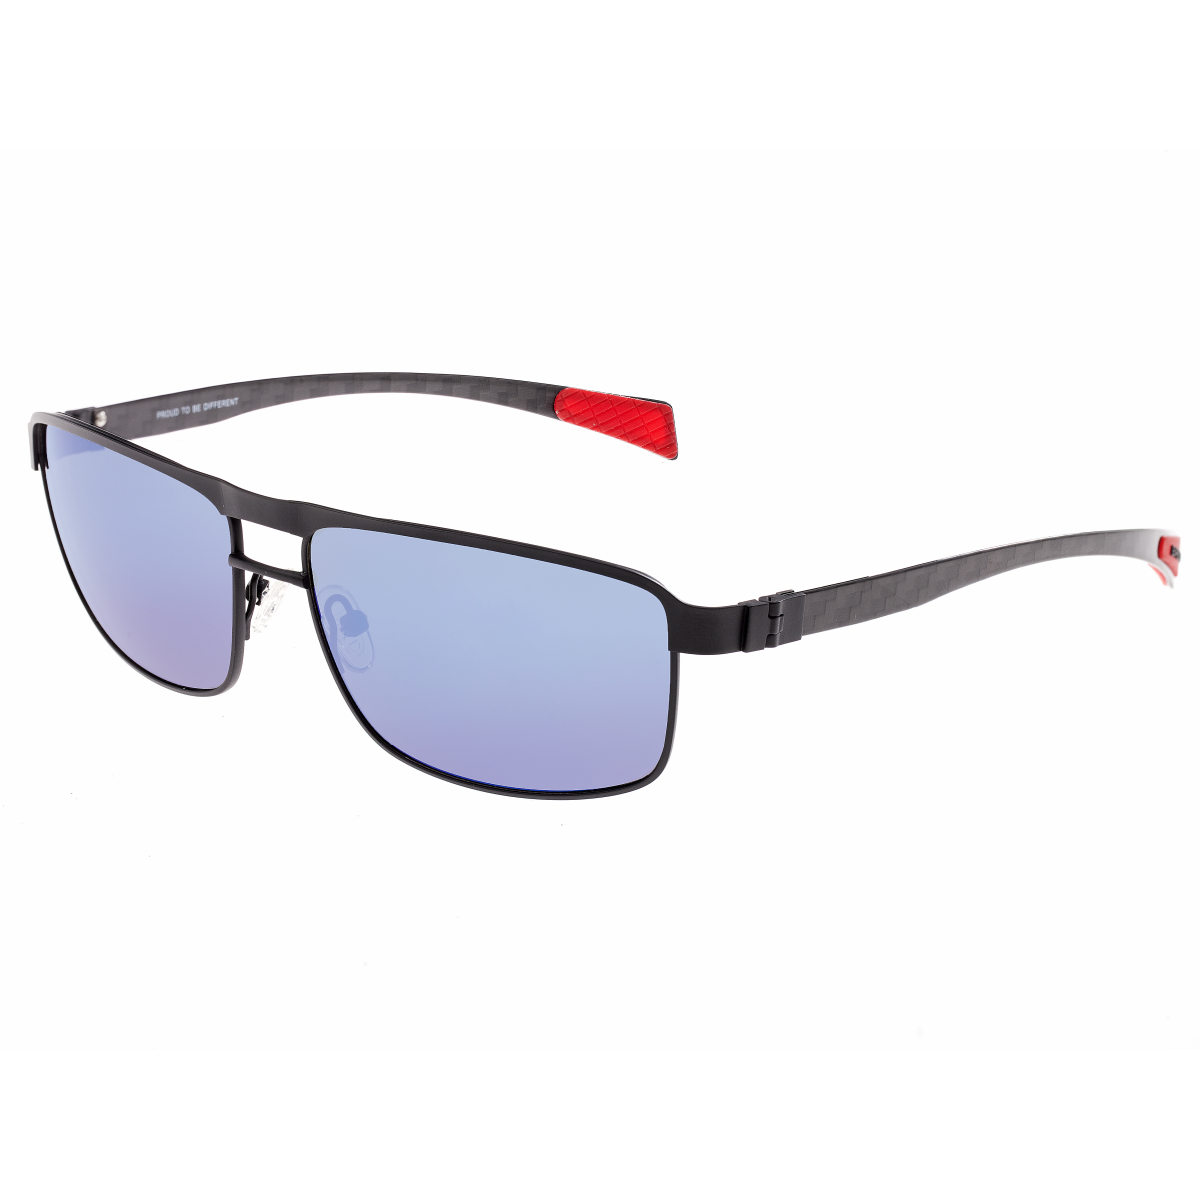 b7f3977bcc96f Breed Taurus Titanium and Carbon Fiber Polarized Sunglasses - Black Blue  BSG005BK